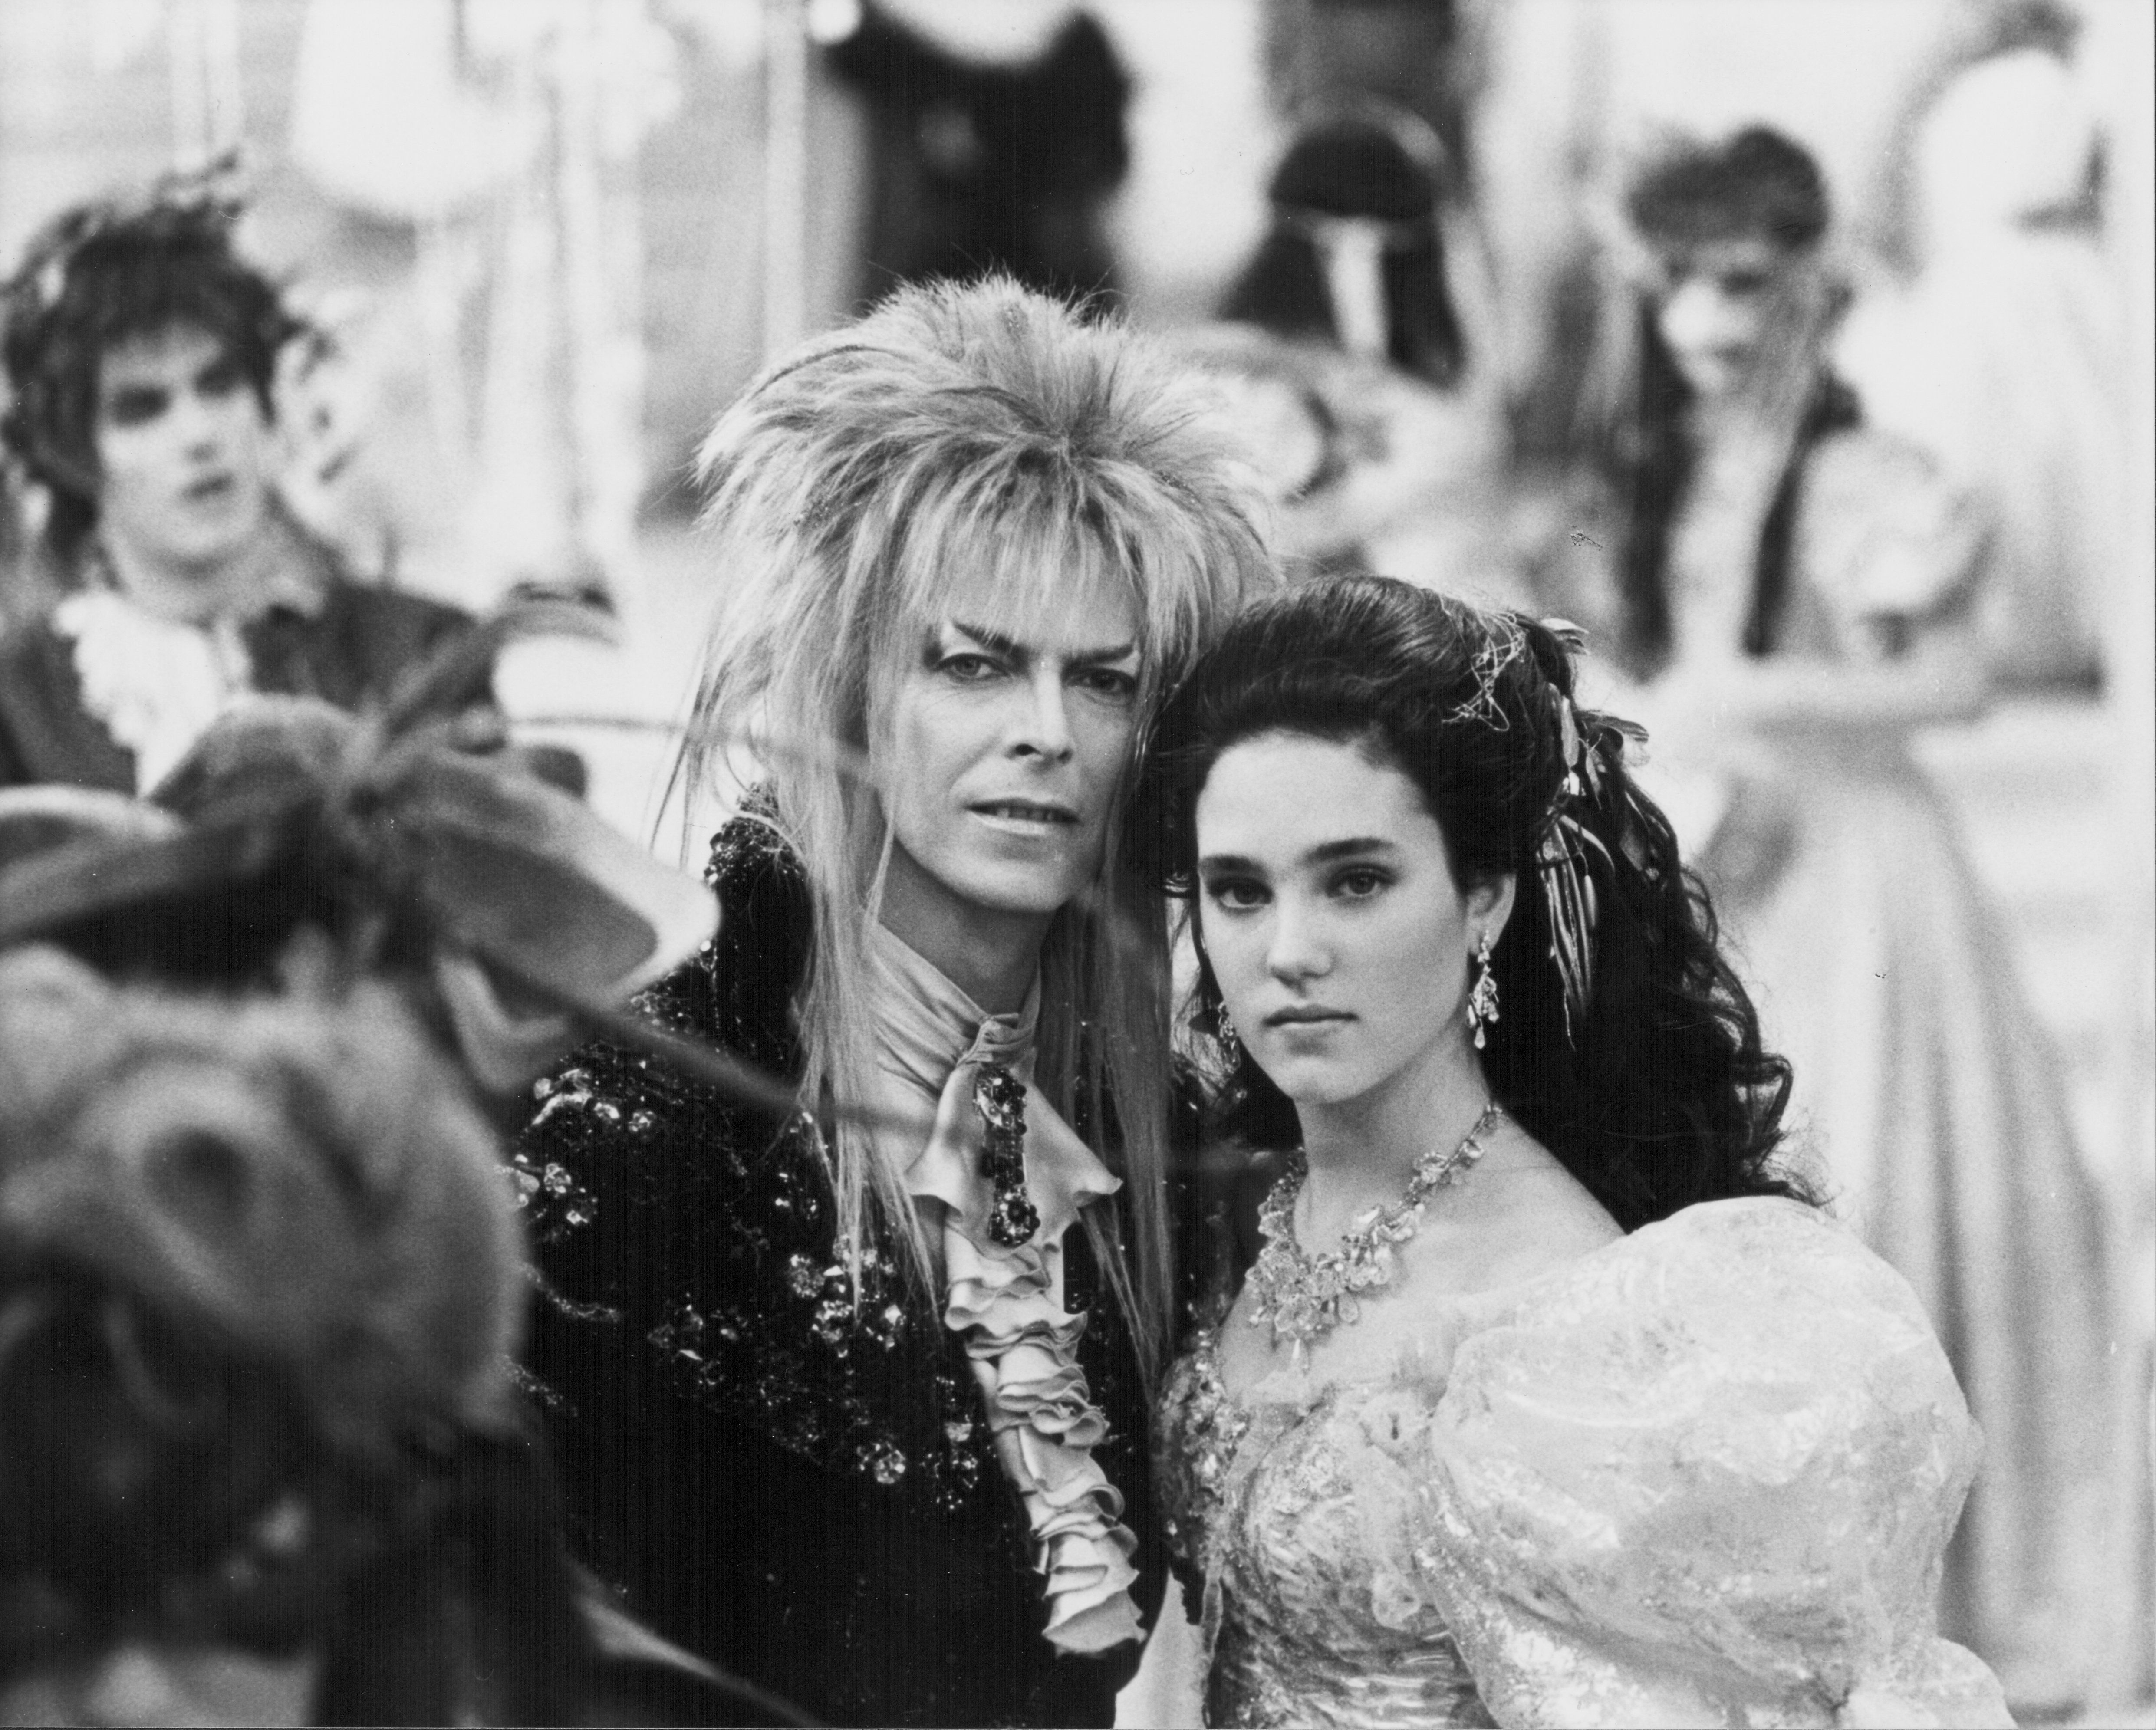 """David Bowie and Jennifer Connelly appear in a scene from 1986's """"Labyrinth."""""""